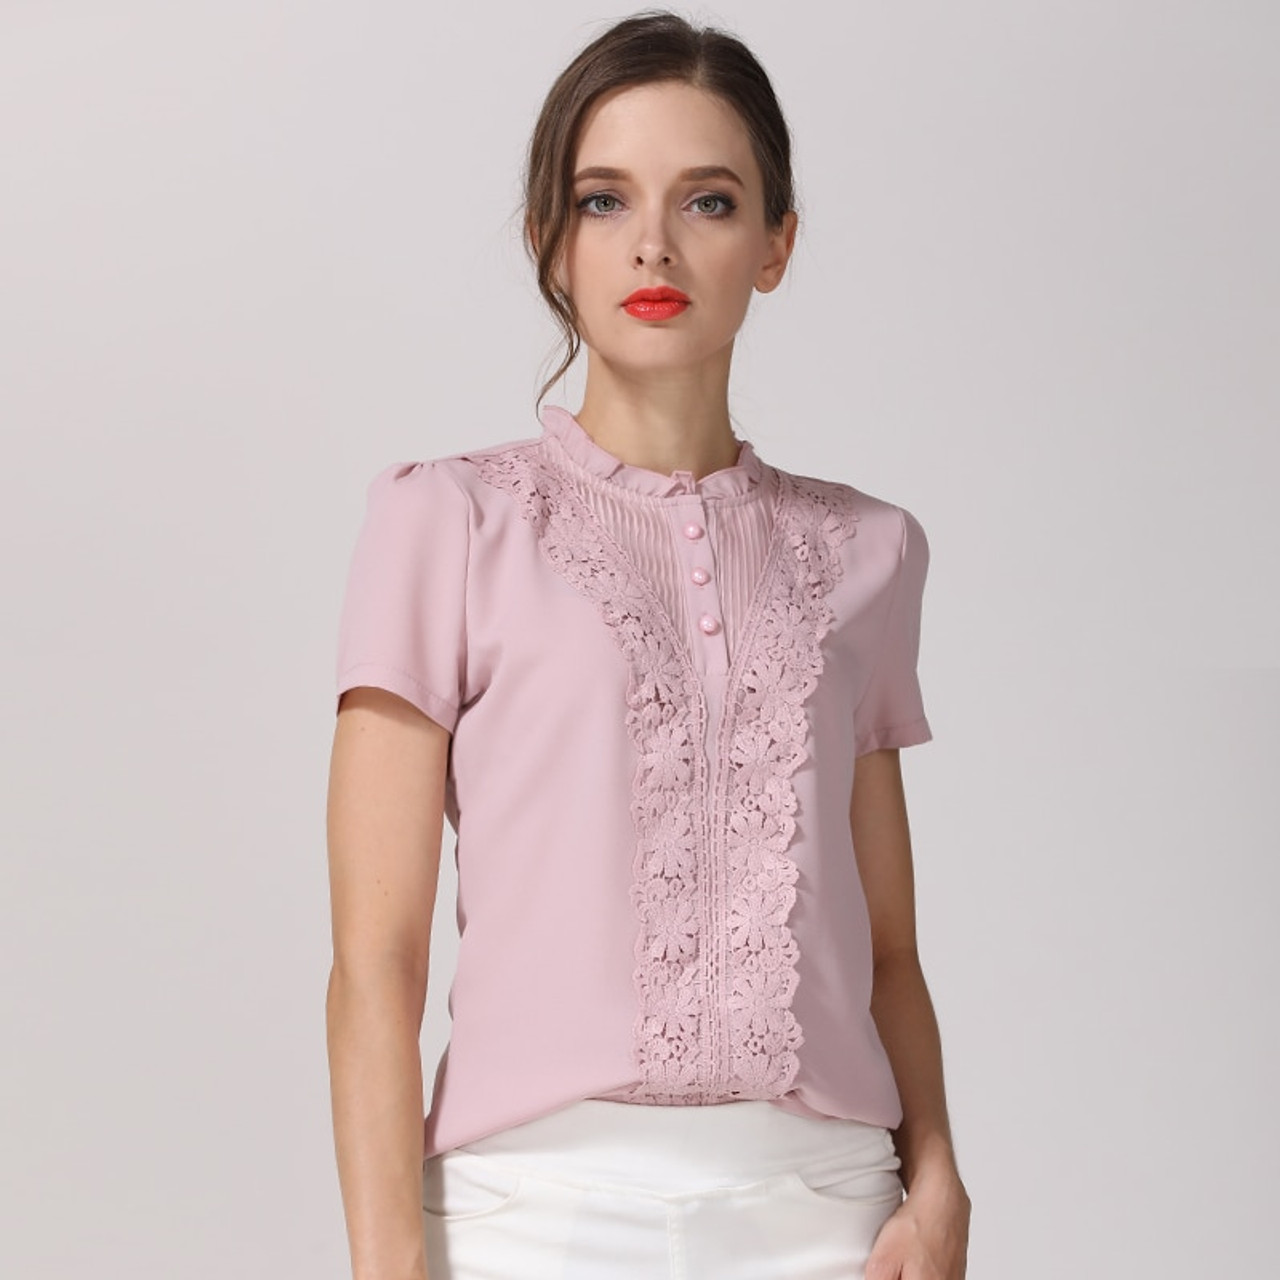 New Women/'s Sleeve Shirt Blouse Top Lace Pink S M L